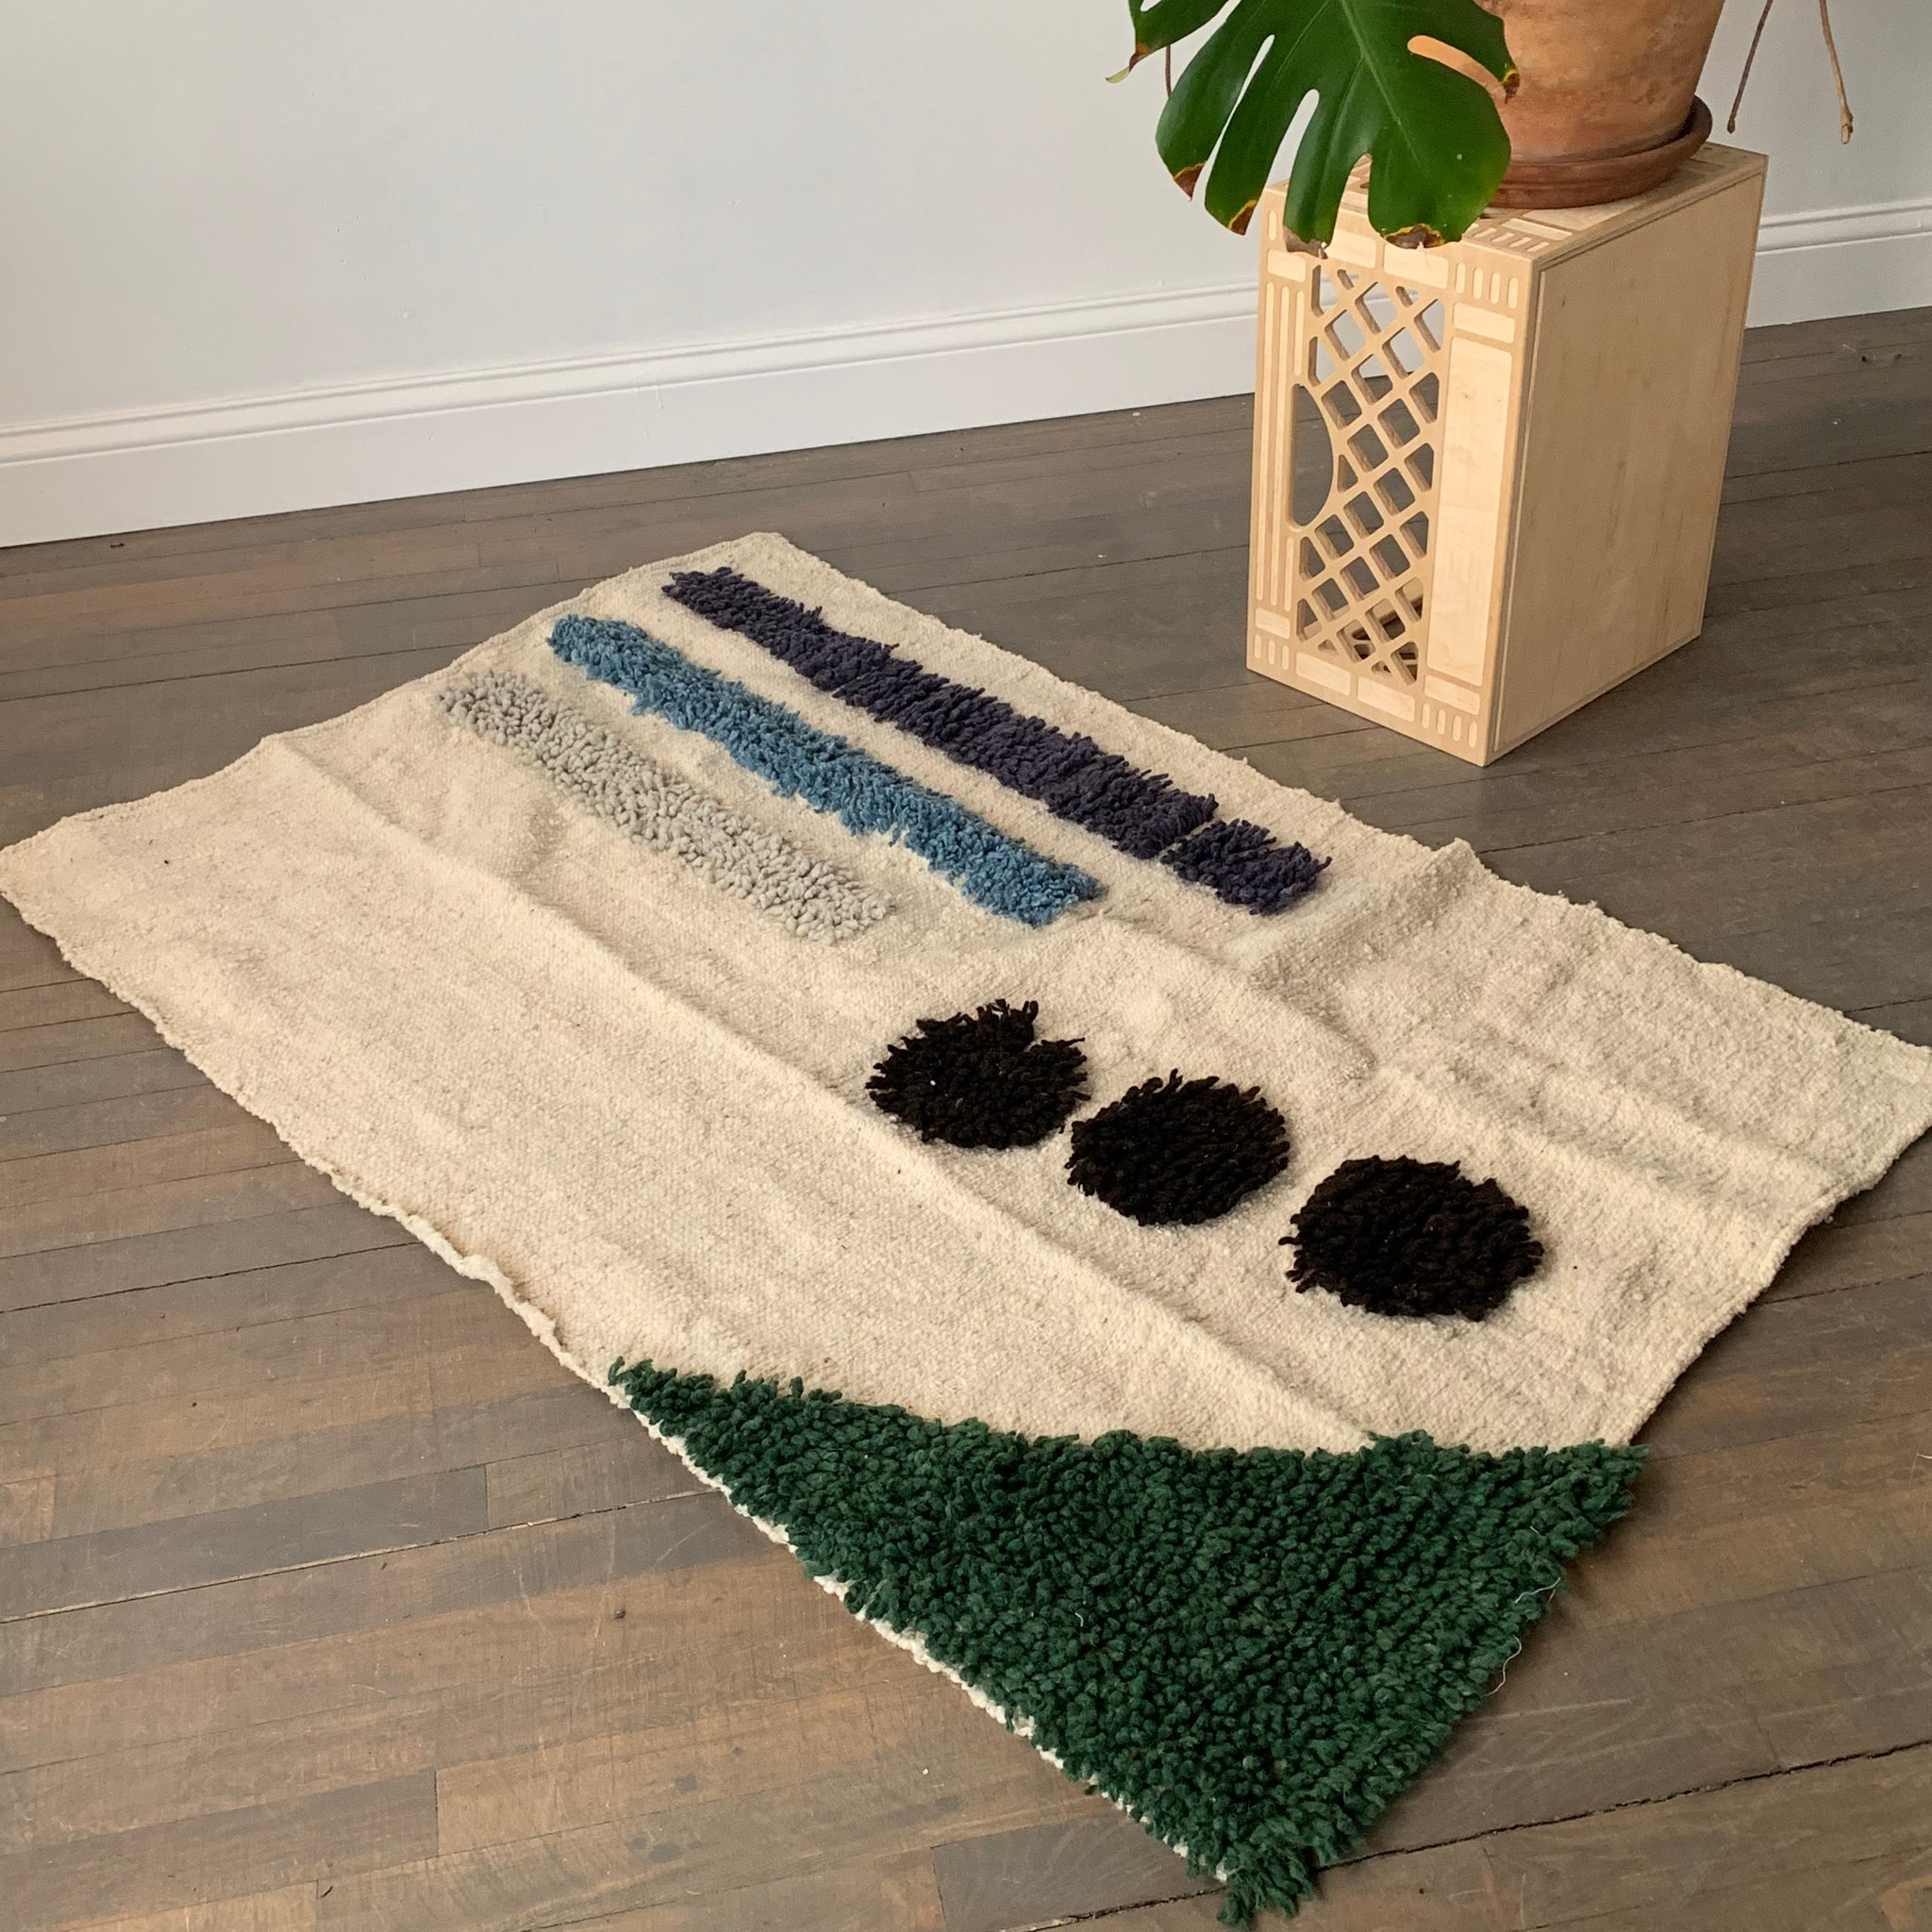 Notes Handmade Wool Rug by Meso Goods